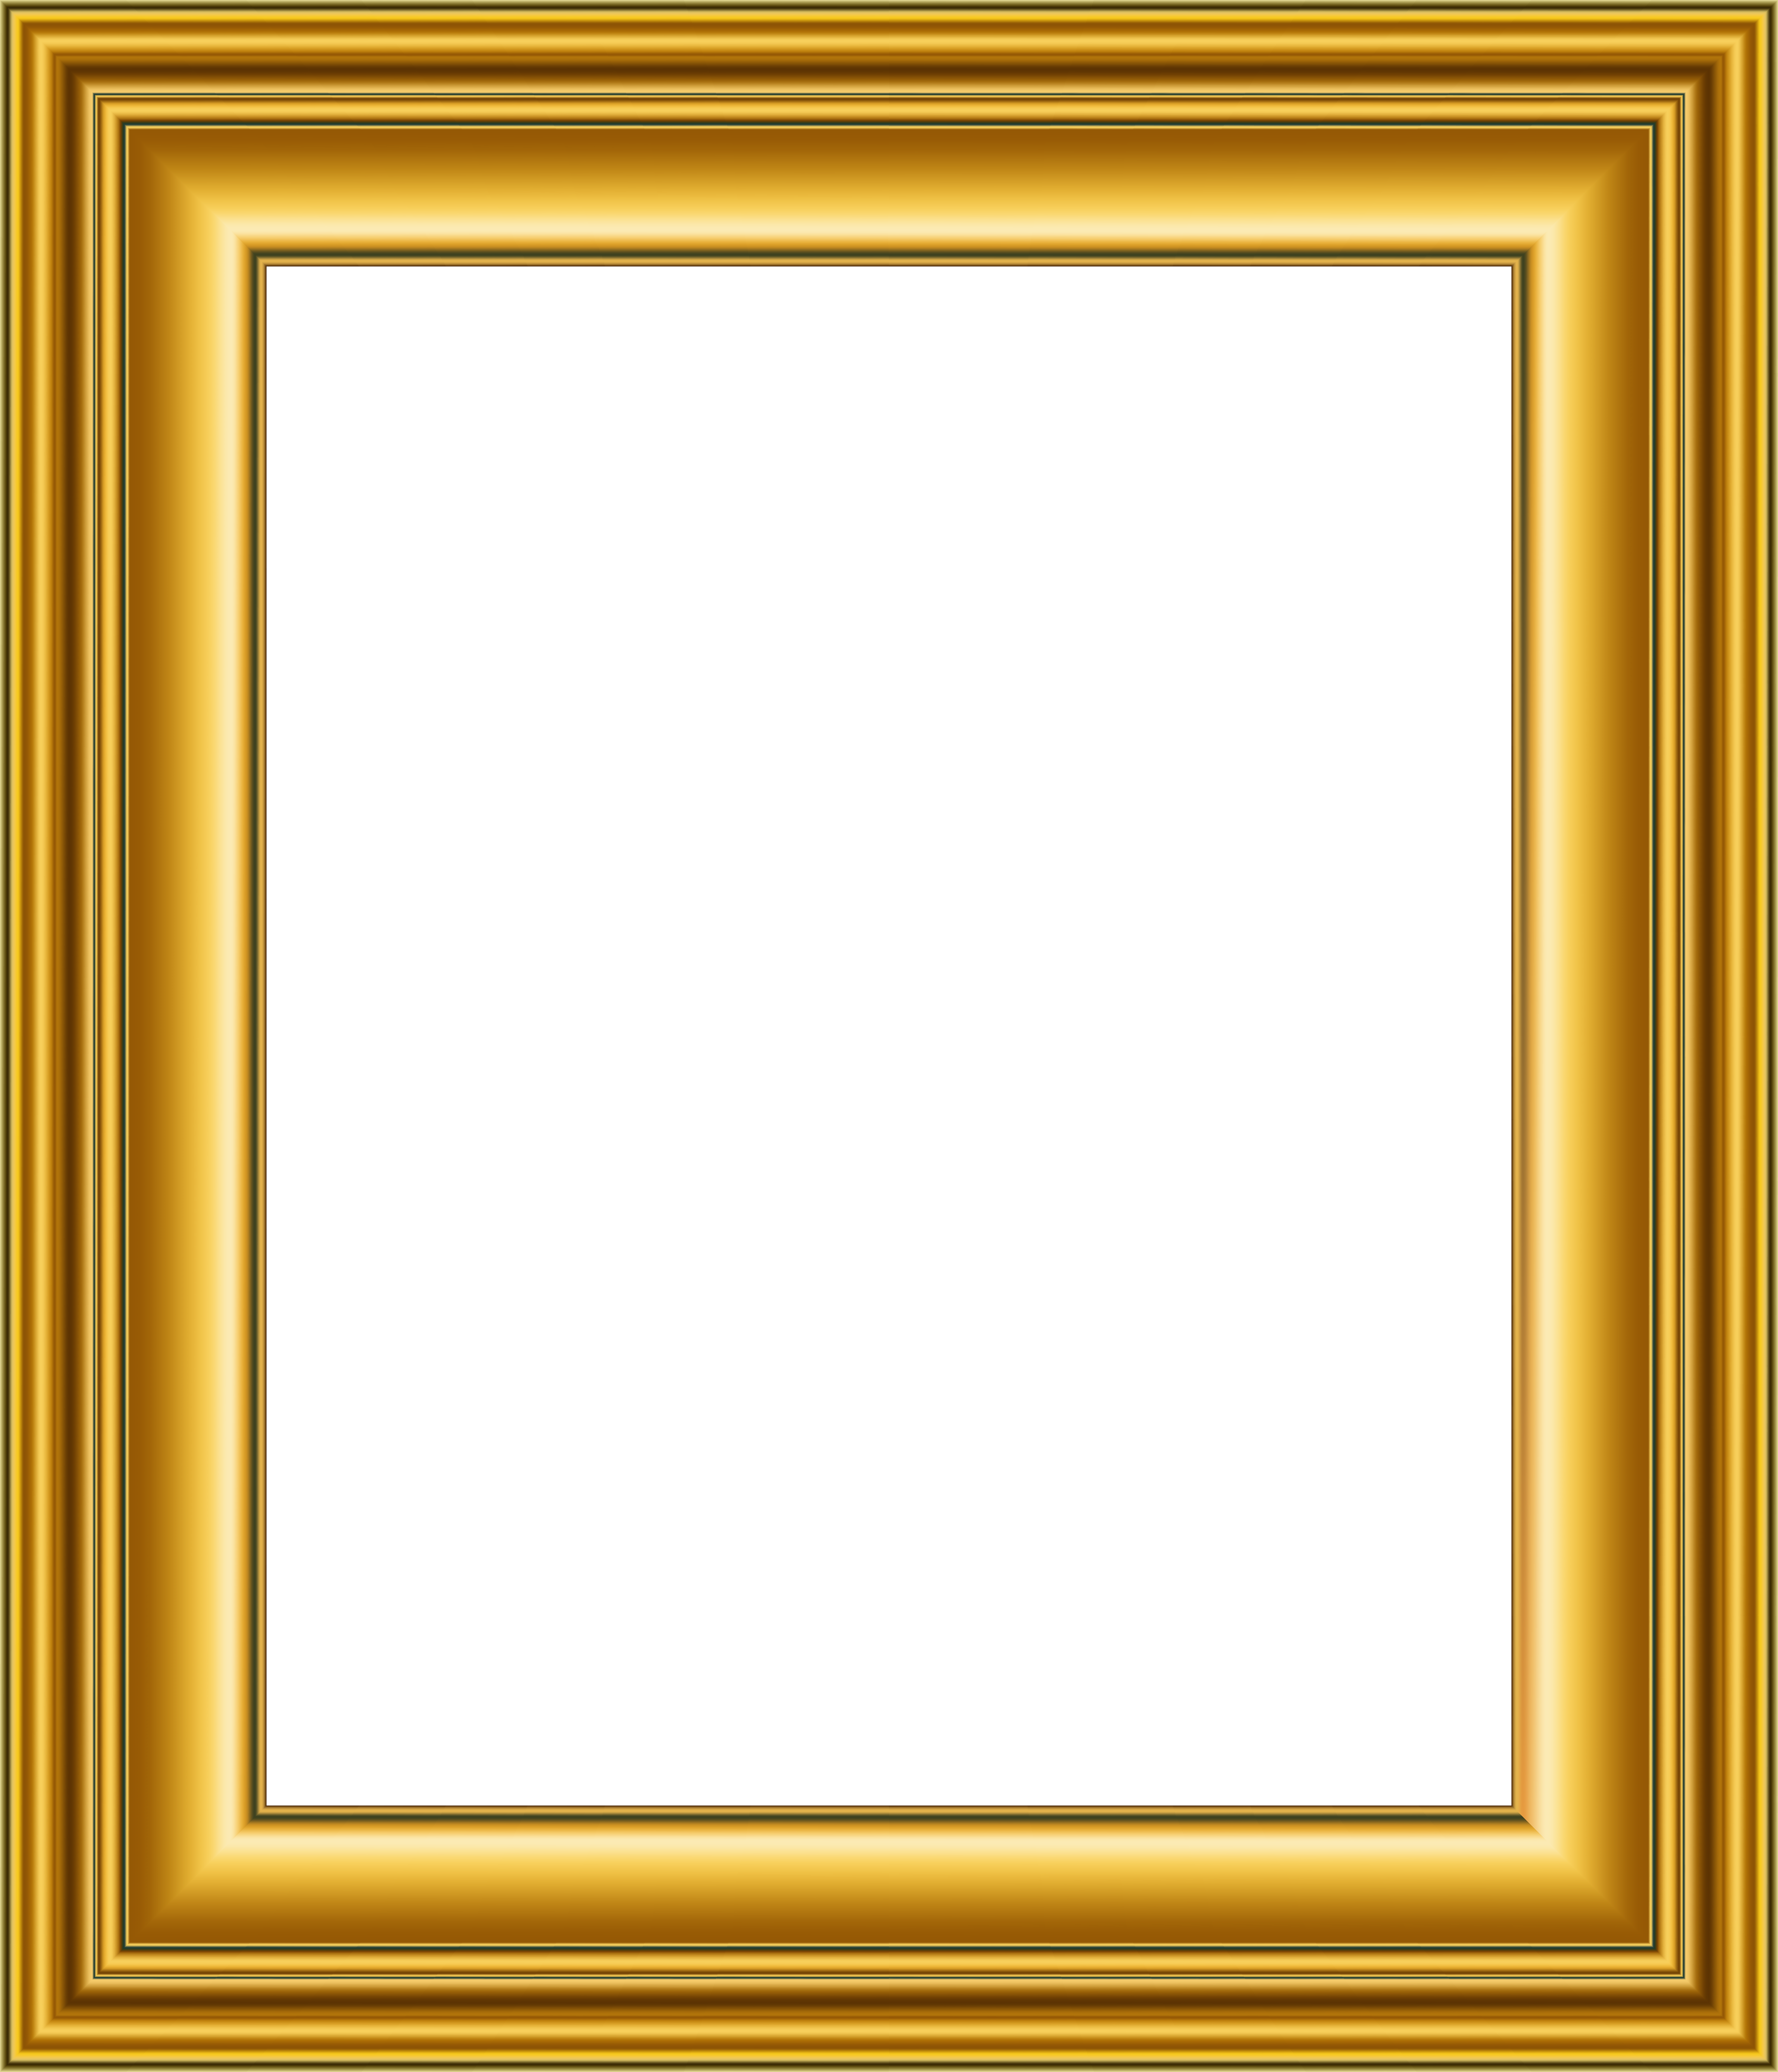 Molduras para photoshop png. Frames for april onthemarch